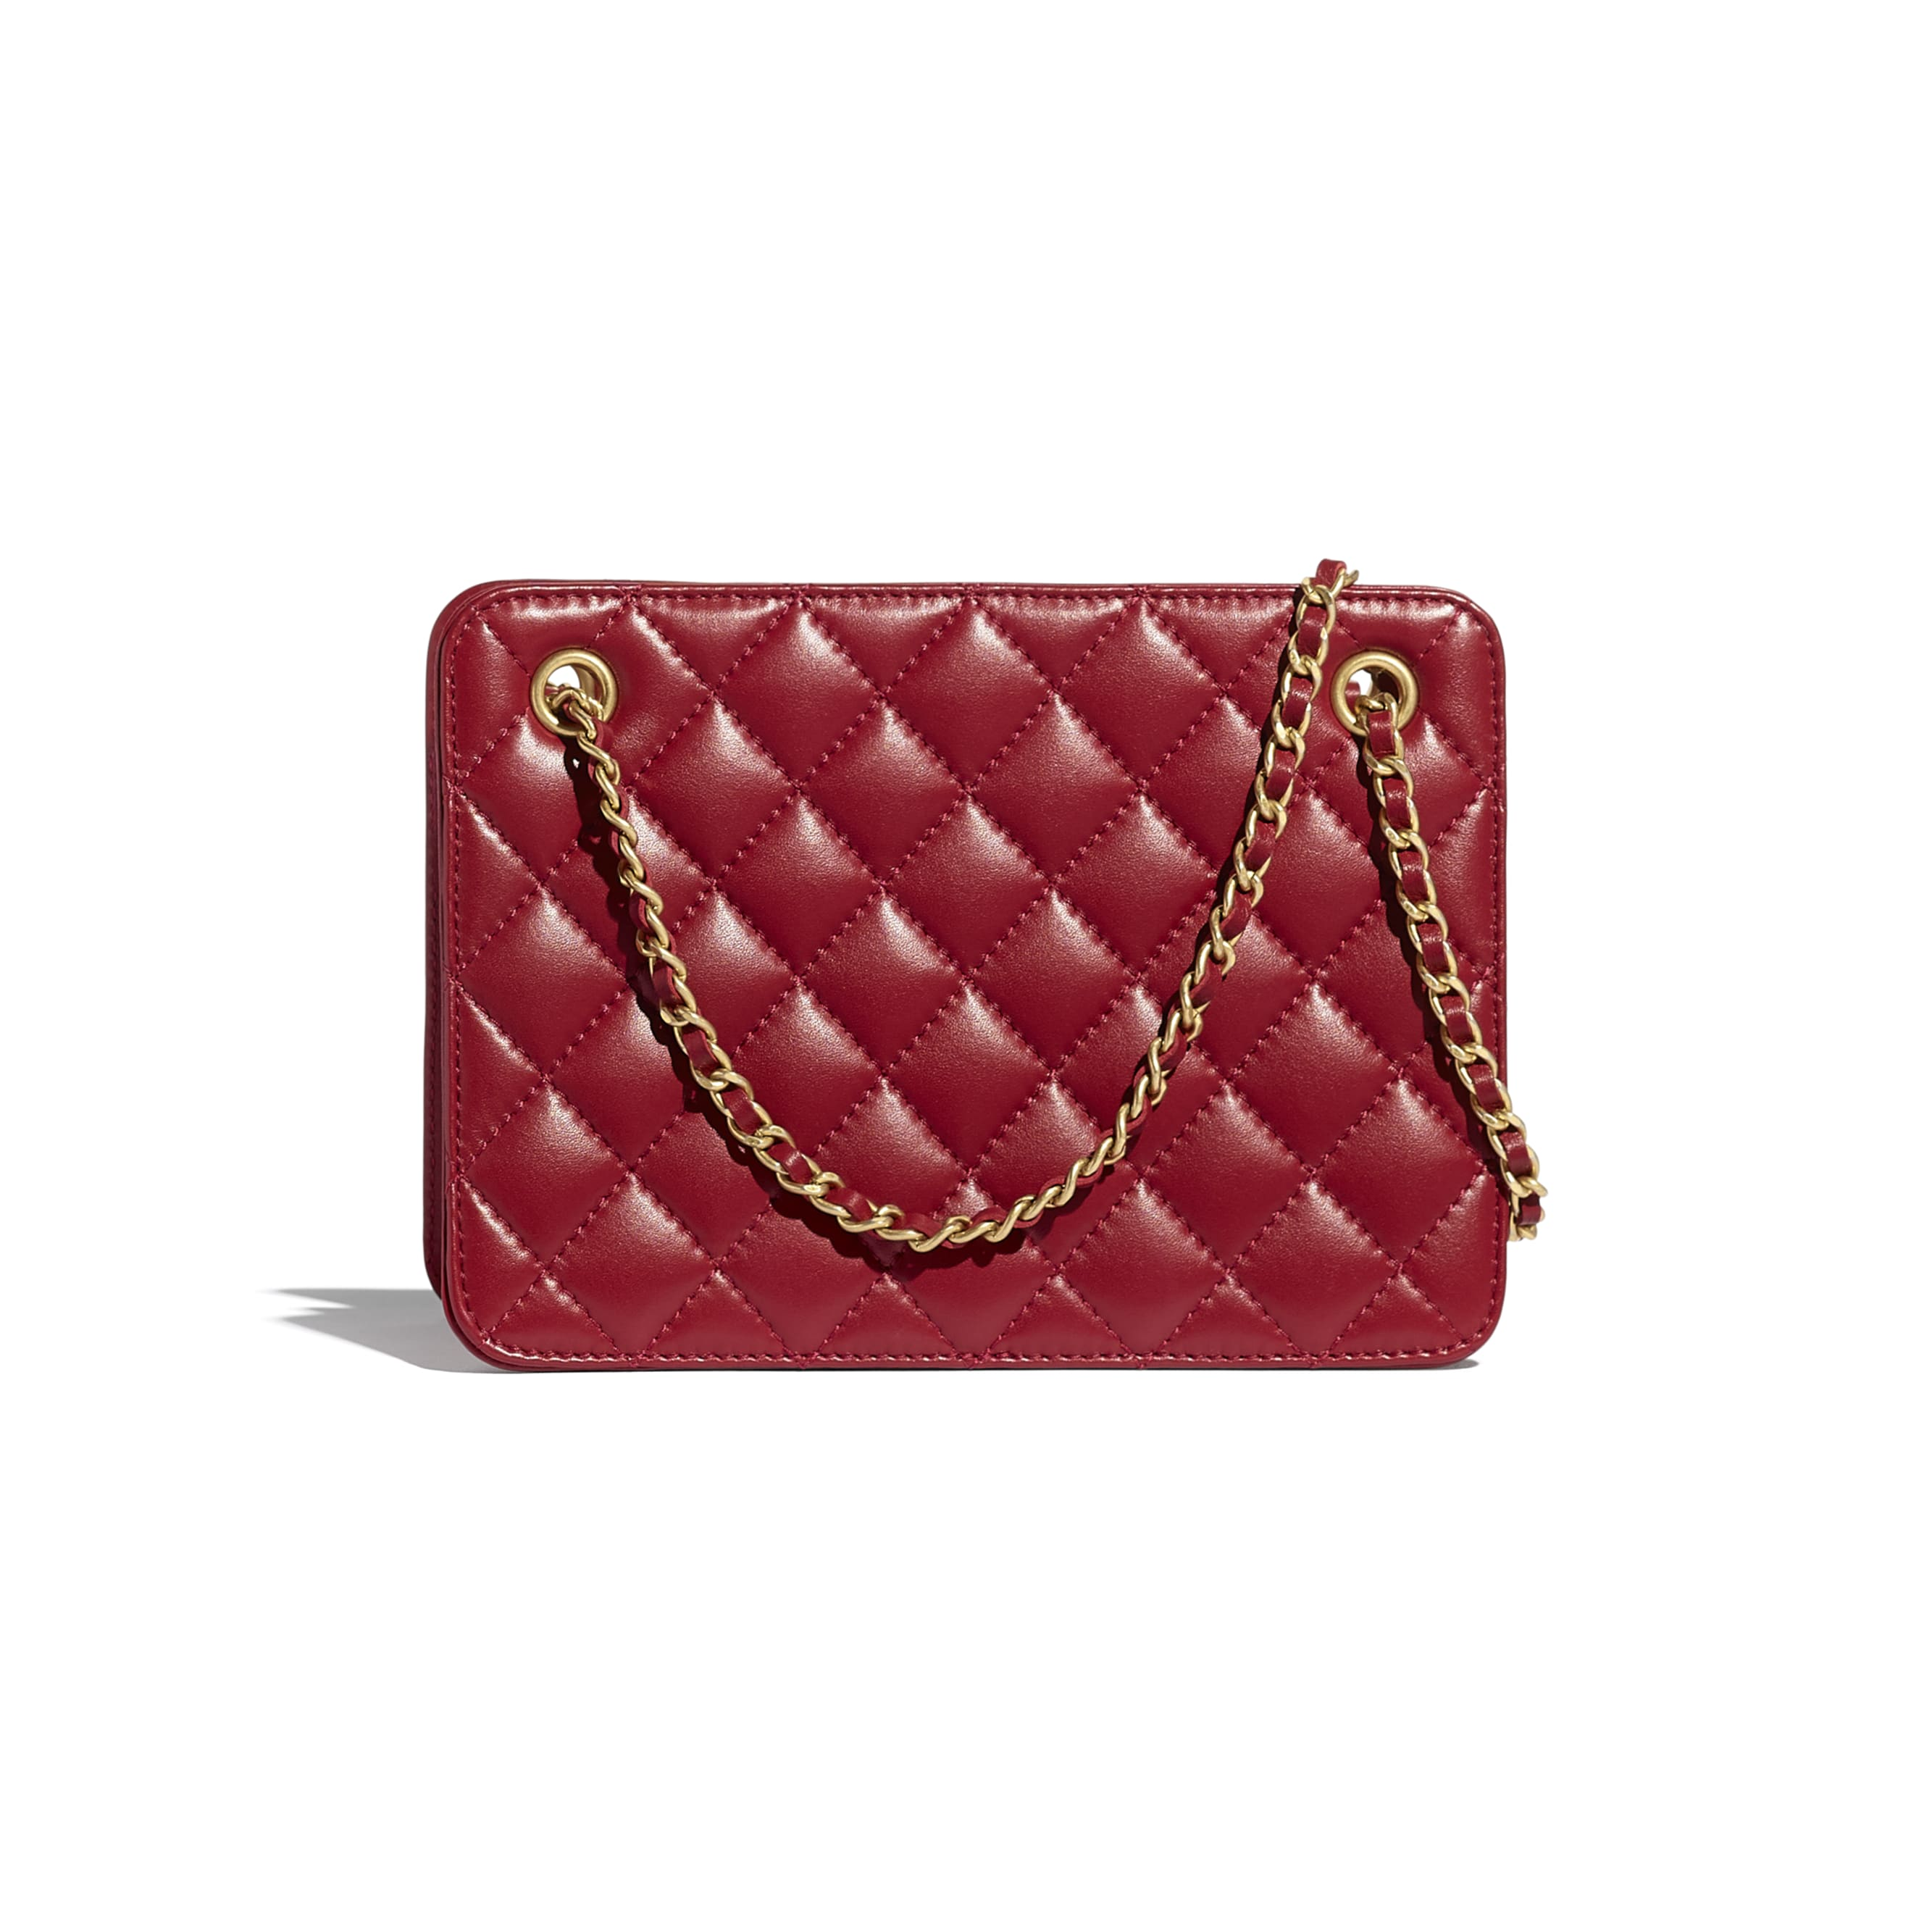 Small Accordion Handbag - Red - Calfskin & Gold-Tone Metal - CHANEL - Alternative view - see standard sized version